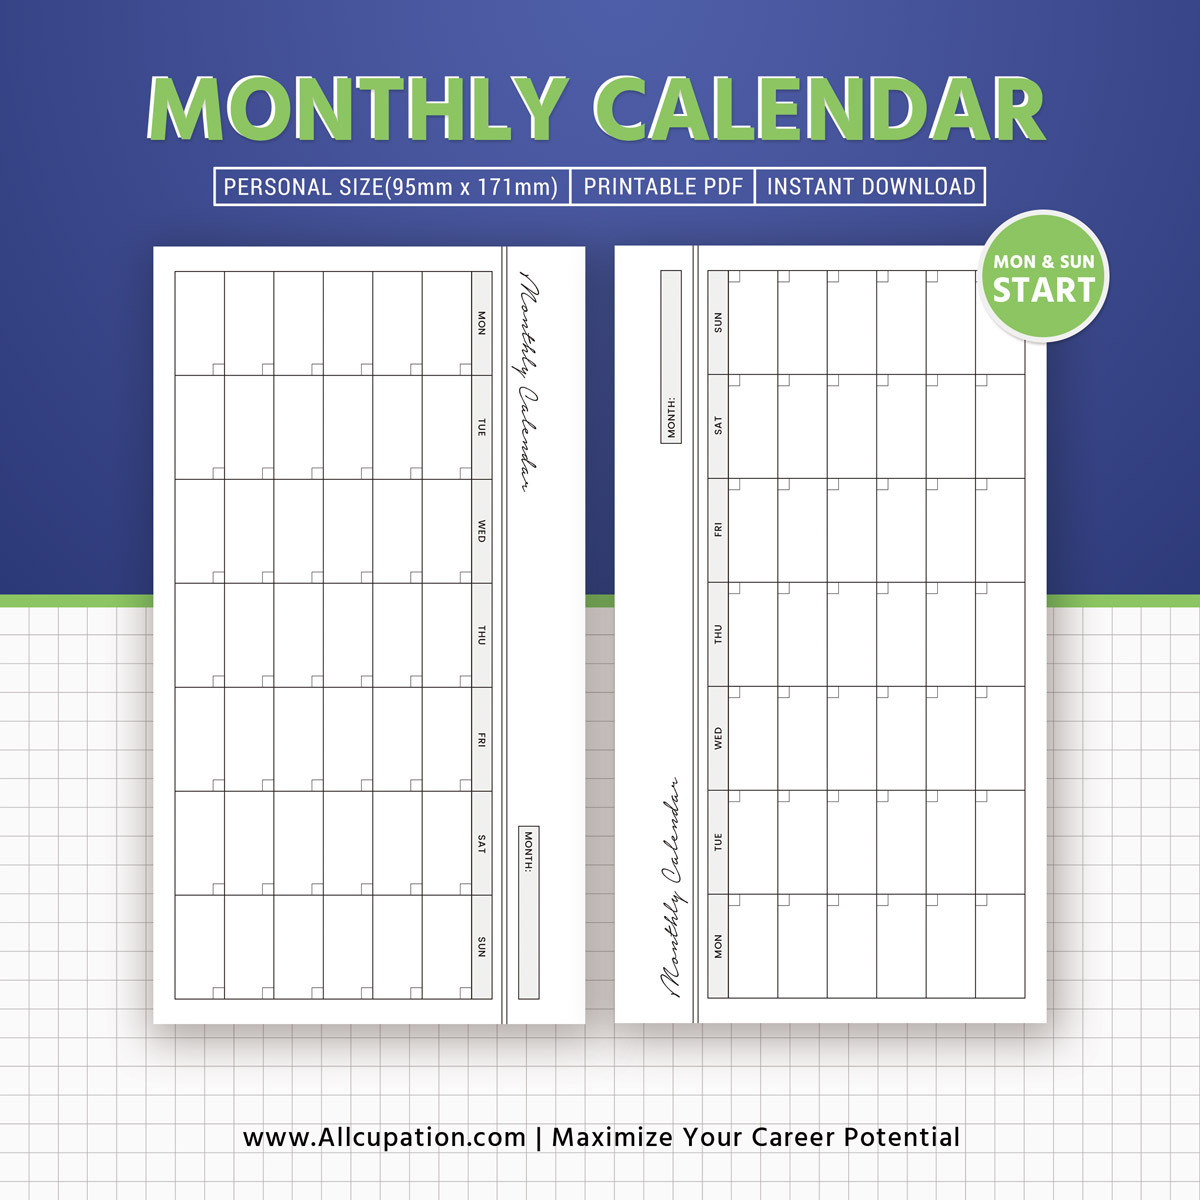 photograph relating to Happy Planner Monthly Layout Printable titled Regular monthly Calendar, 2019 Calendar, Printable Unique Dimensions Inserts, Planner Internet pages, Planner Layout, Easiest Planner, Filofax Specific, Kikki K Medium